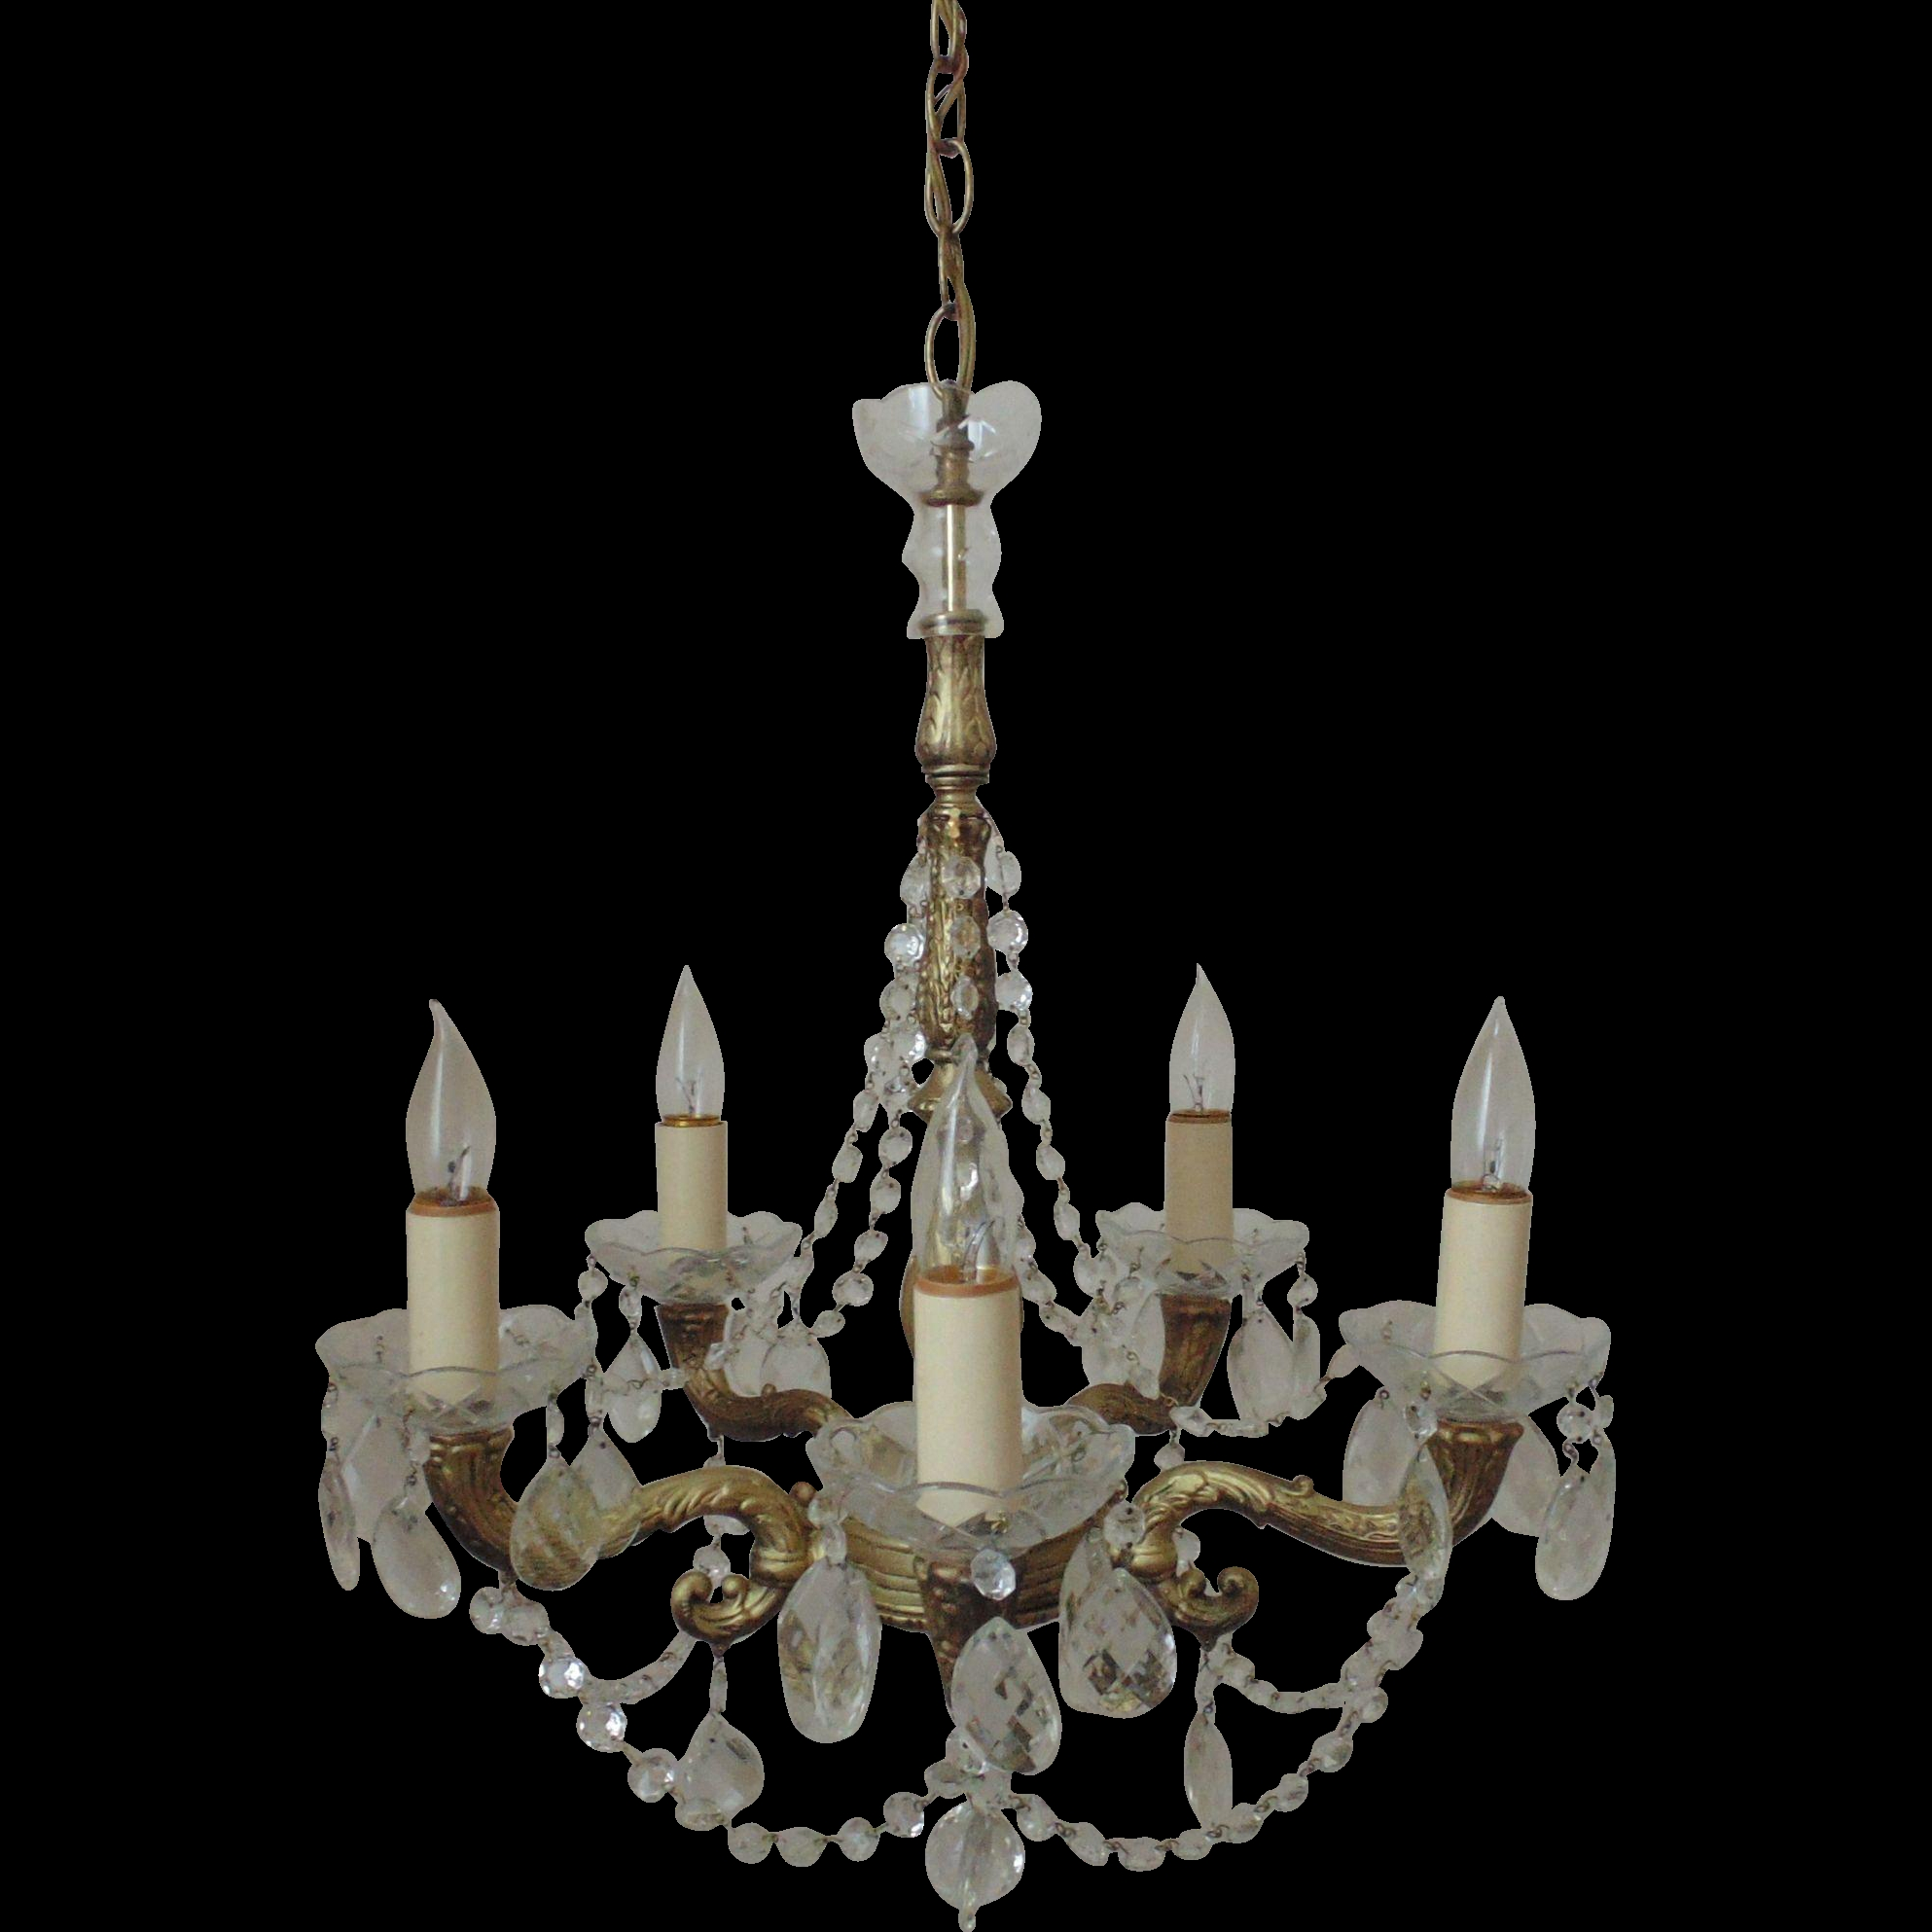 Vintage Chandelier Gilt Metal Crystal Beaded Swags Teardrop Pertaining To Vintage Chandelier (Image 10 of 15)